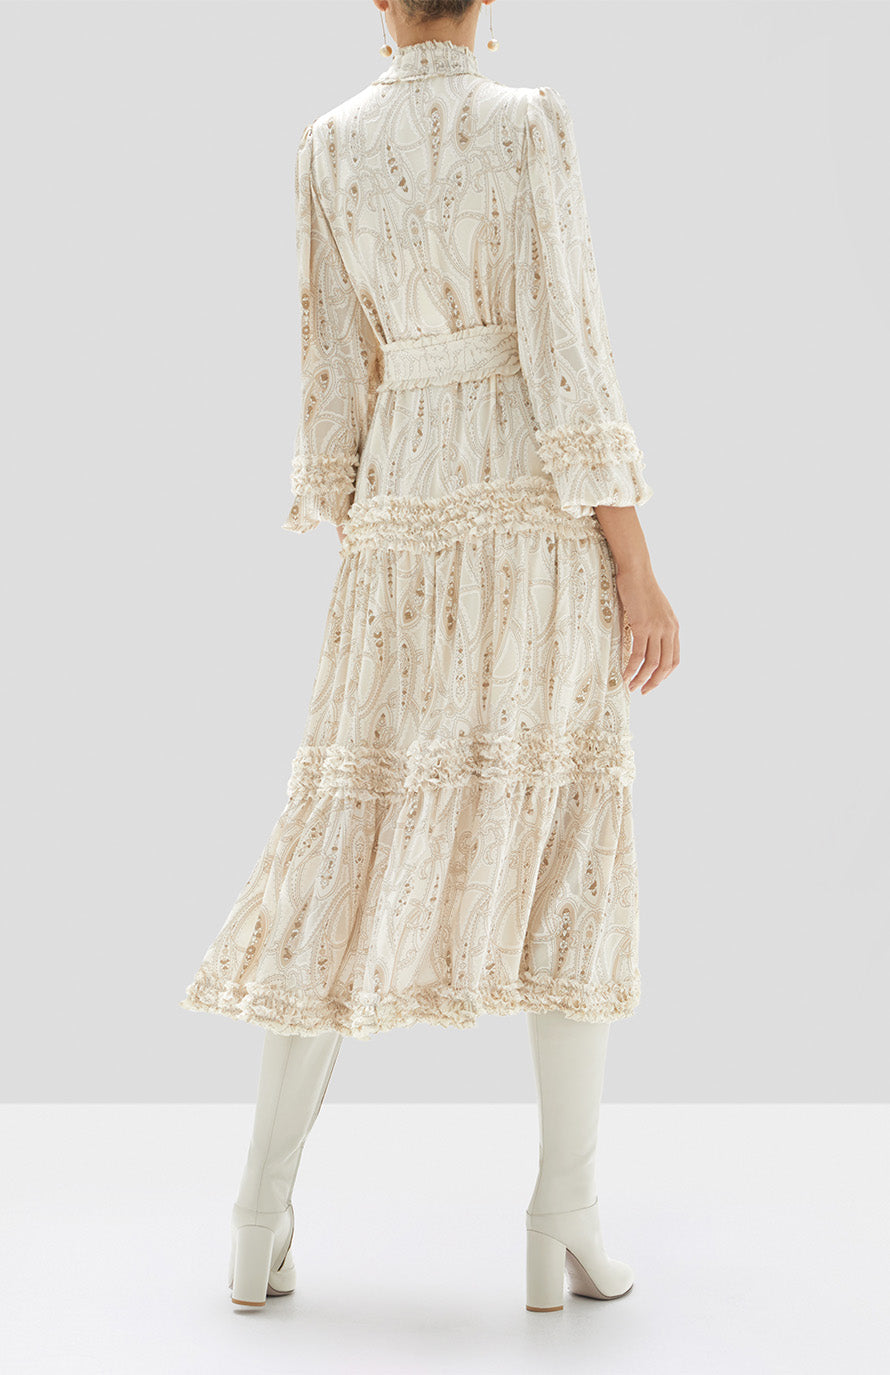 Alexis Rozalya Dress in Cream Paisley from Our Holiday 2019 Ready to Wear Collection. - Rear View